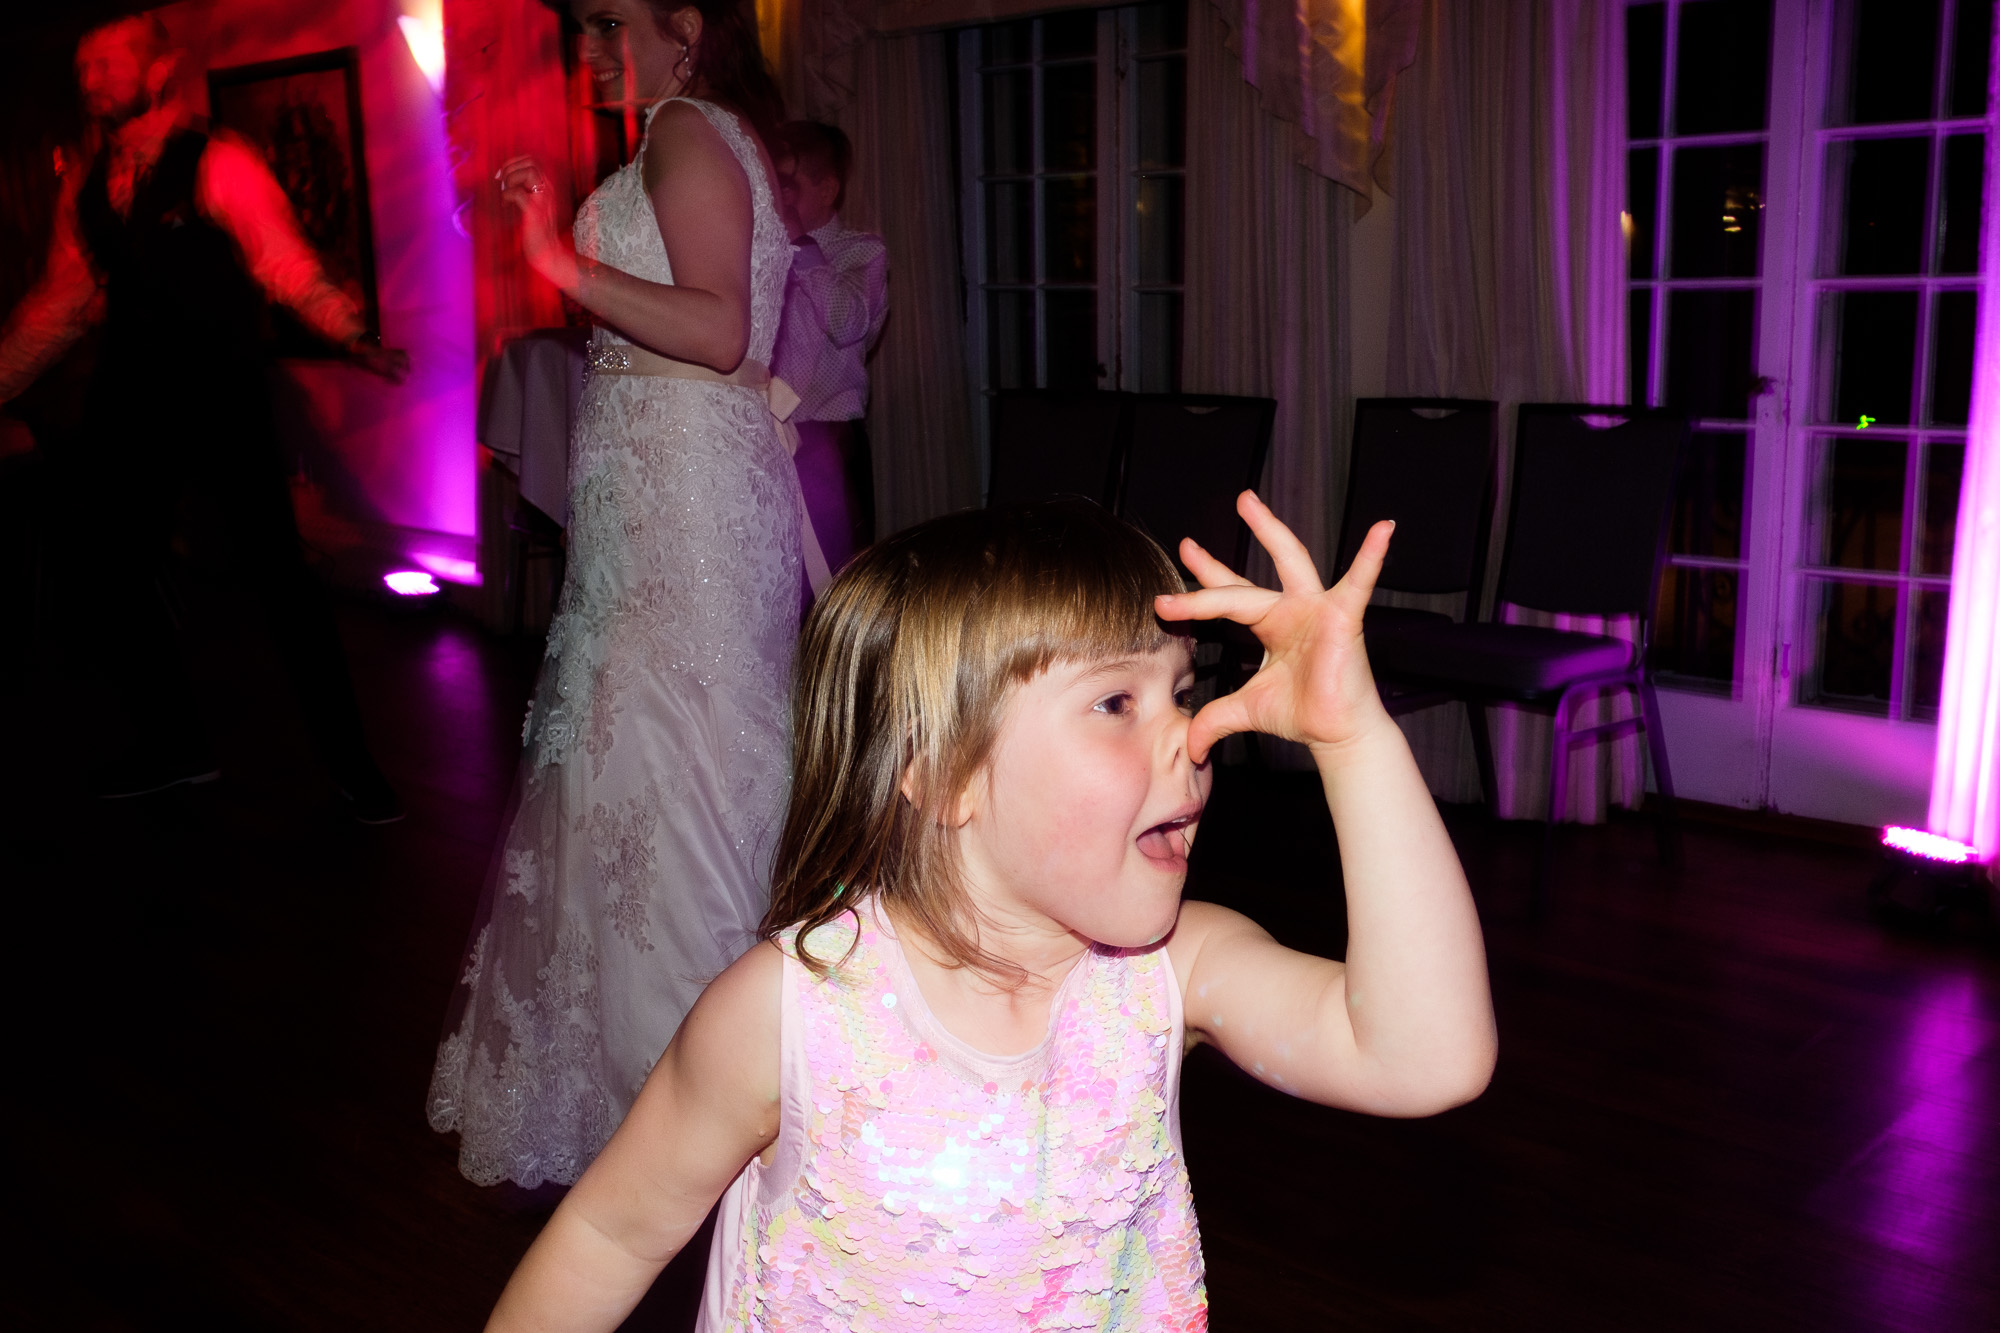 The flower girl hams it up on the dance floor late into the night during the wedding reception at the Glenerin Inn outside of Toronto.